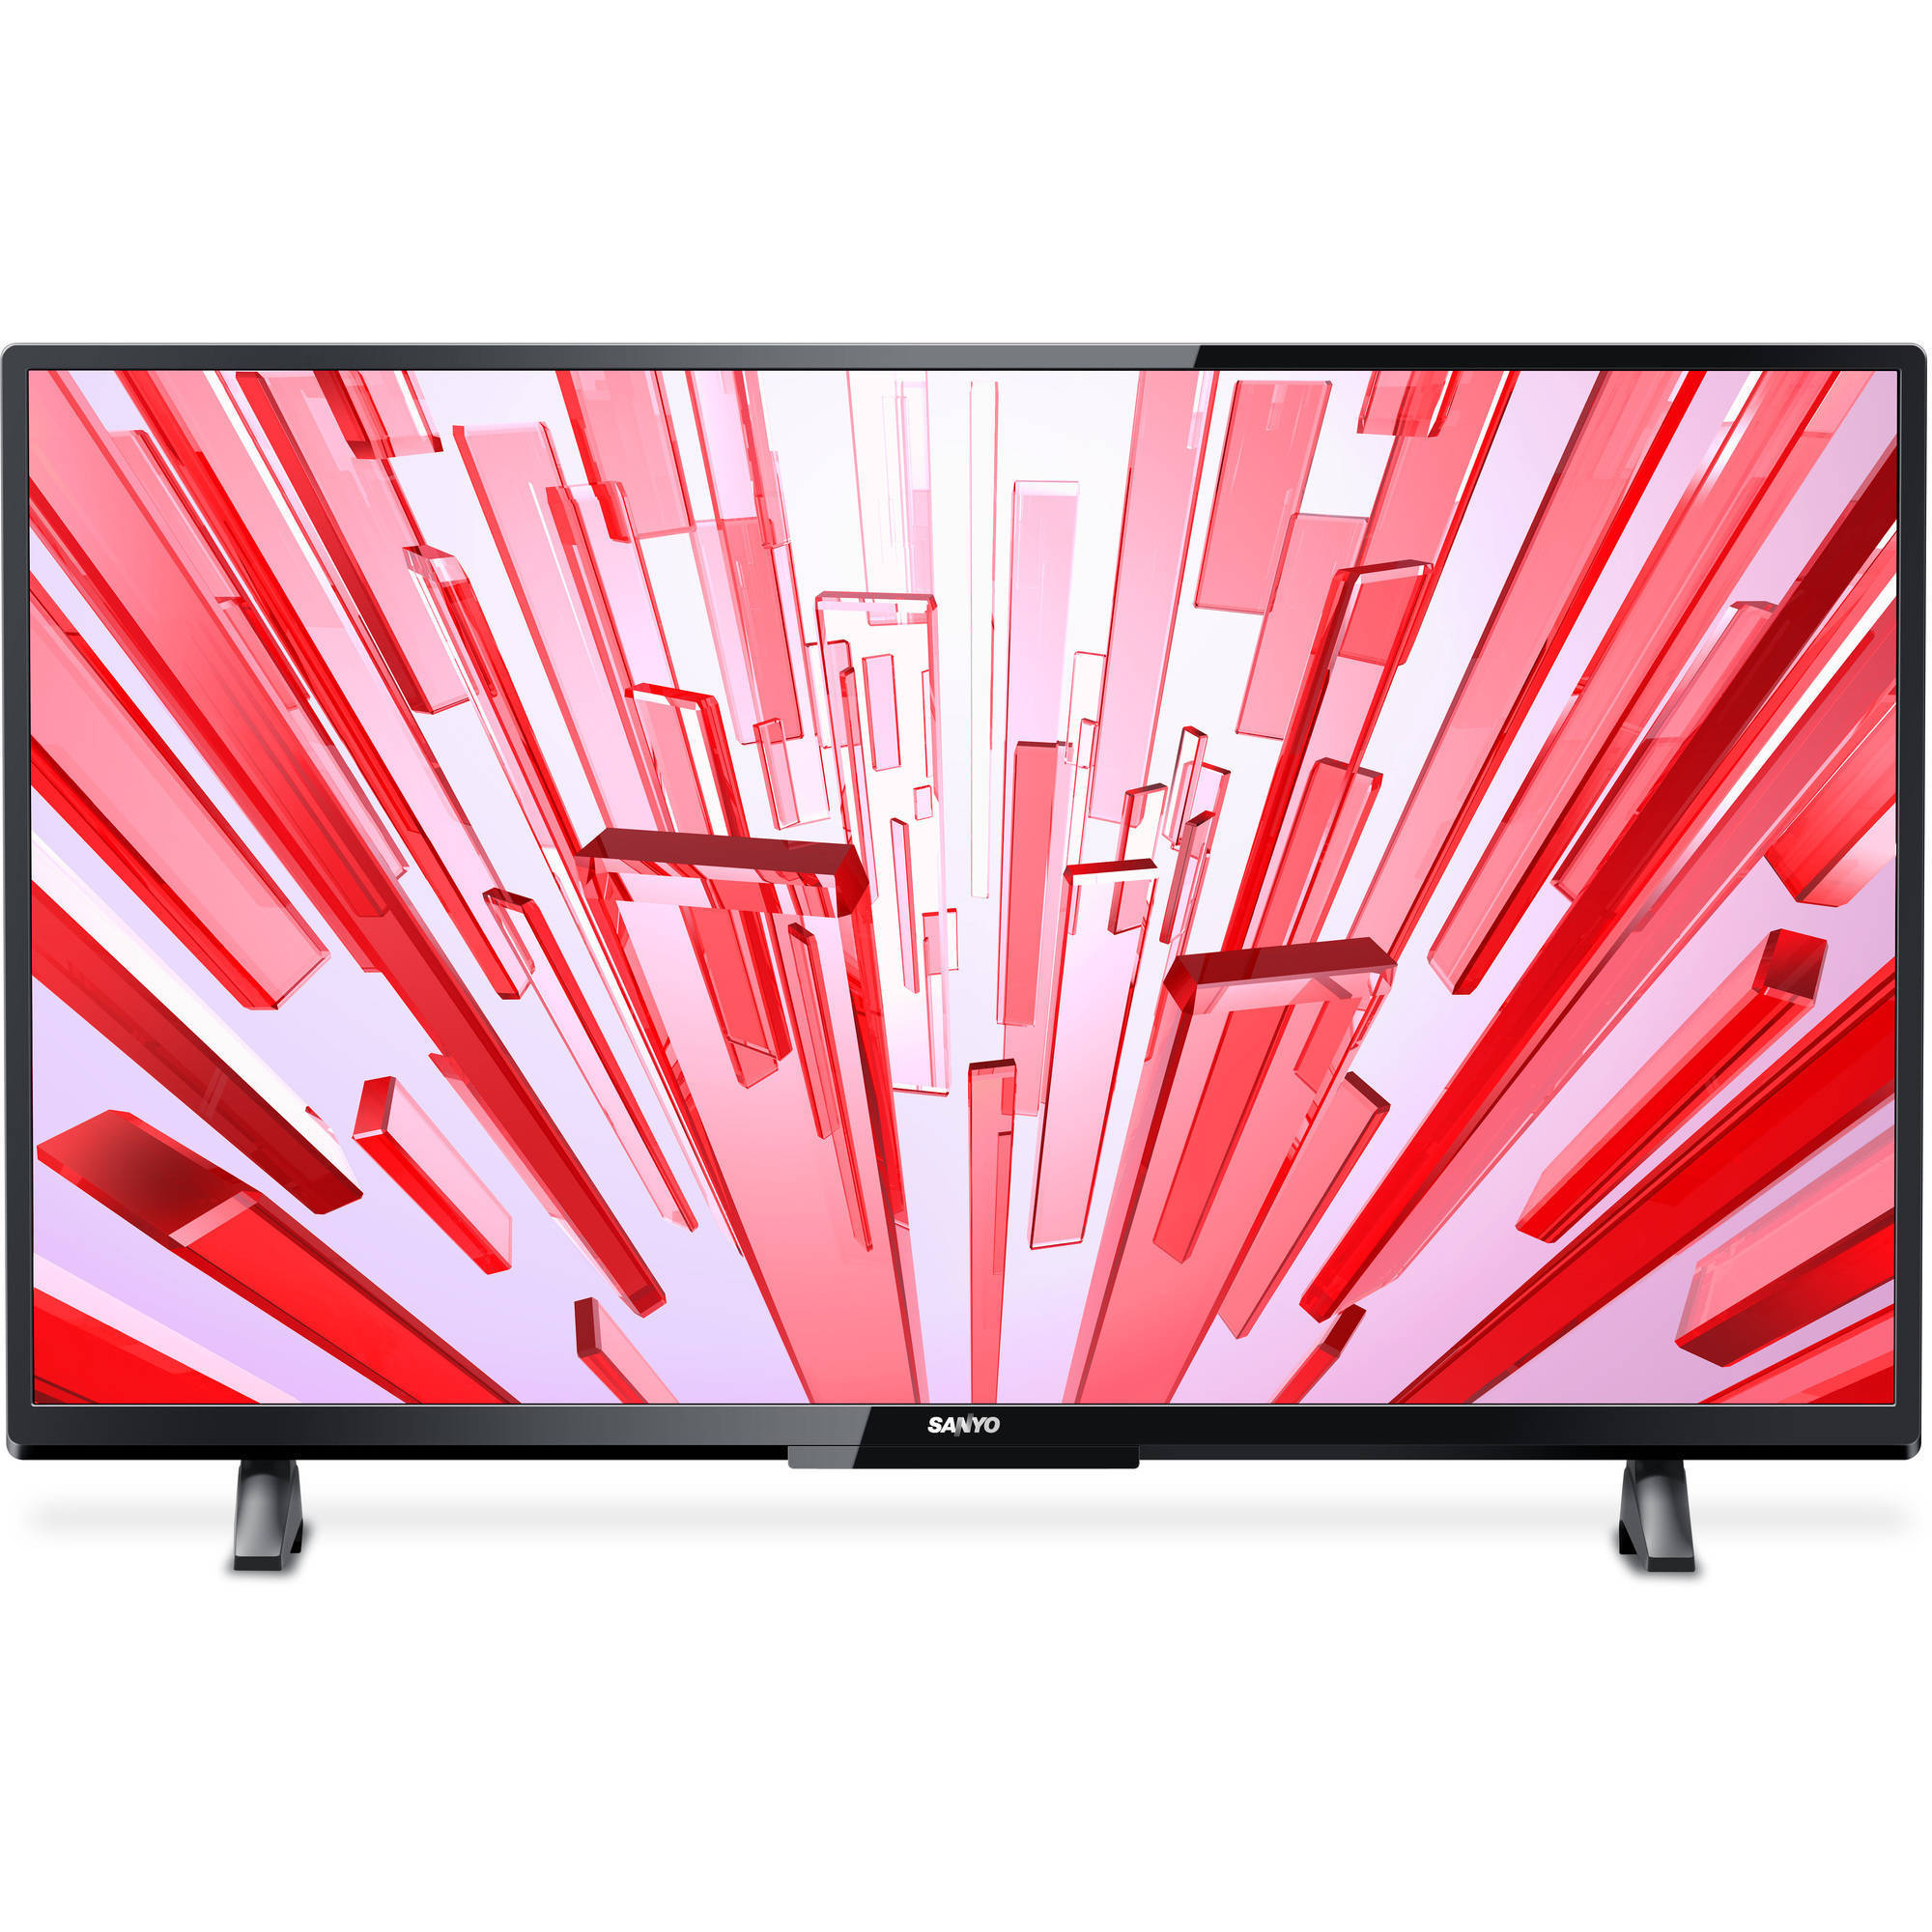 "Refurbished Sanyo 40"" Class FHD (1080P) LED TV (FW40D36F)"